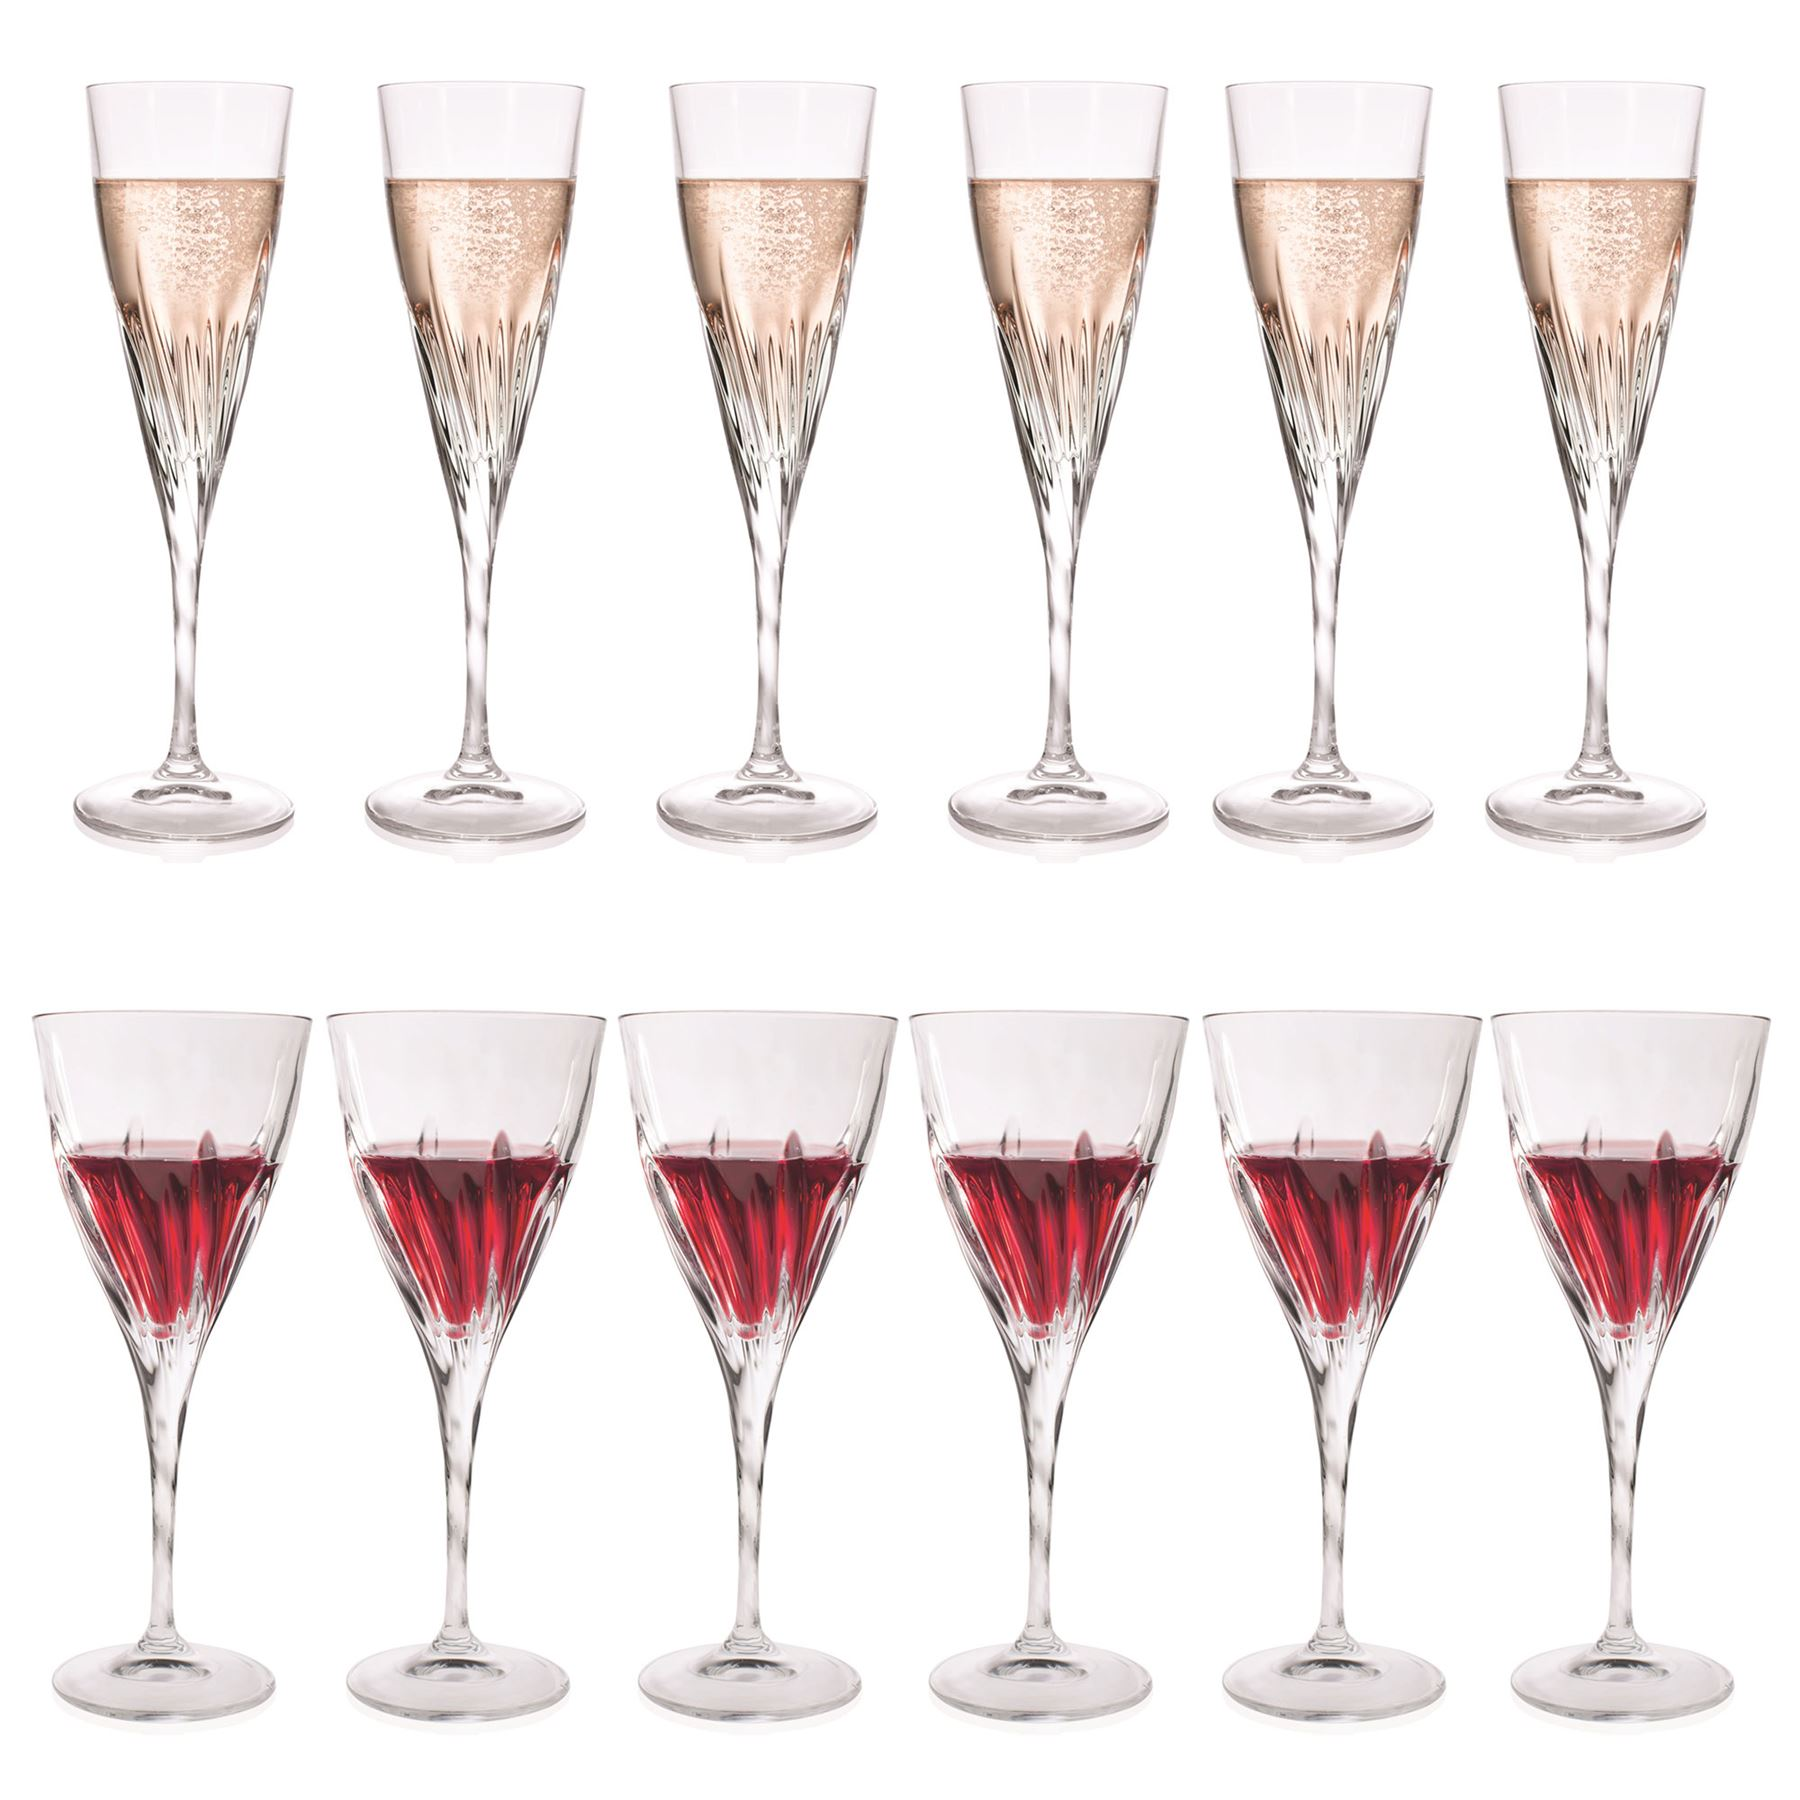 Large Crystal Wine Glasses Rcr Crystal Fluente Large Wine Glasses 290ml And Champagne